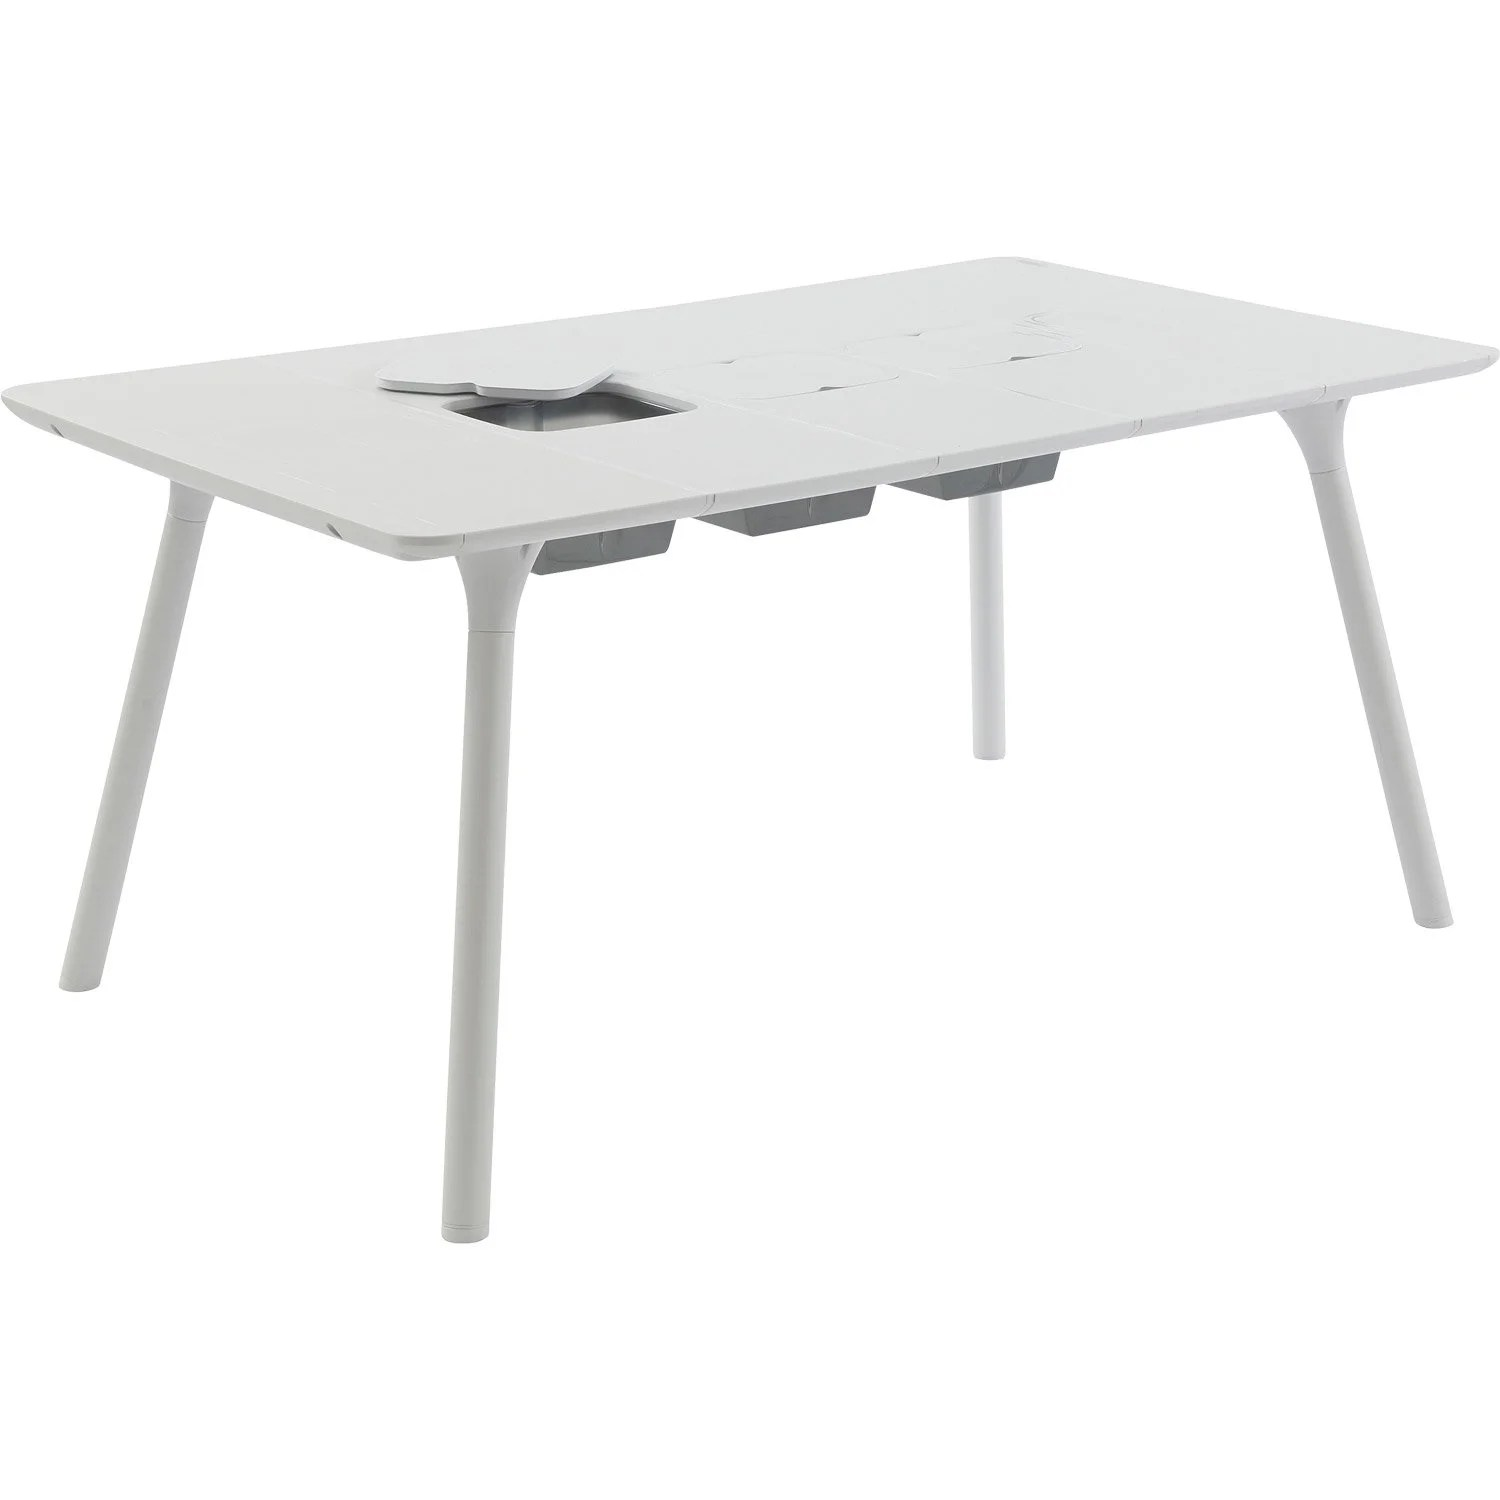 Leroy Merlin Table De Jardin Table De Jardin Rectangle Playmood Naterial Leroy Merlin